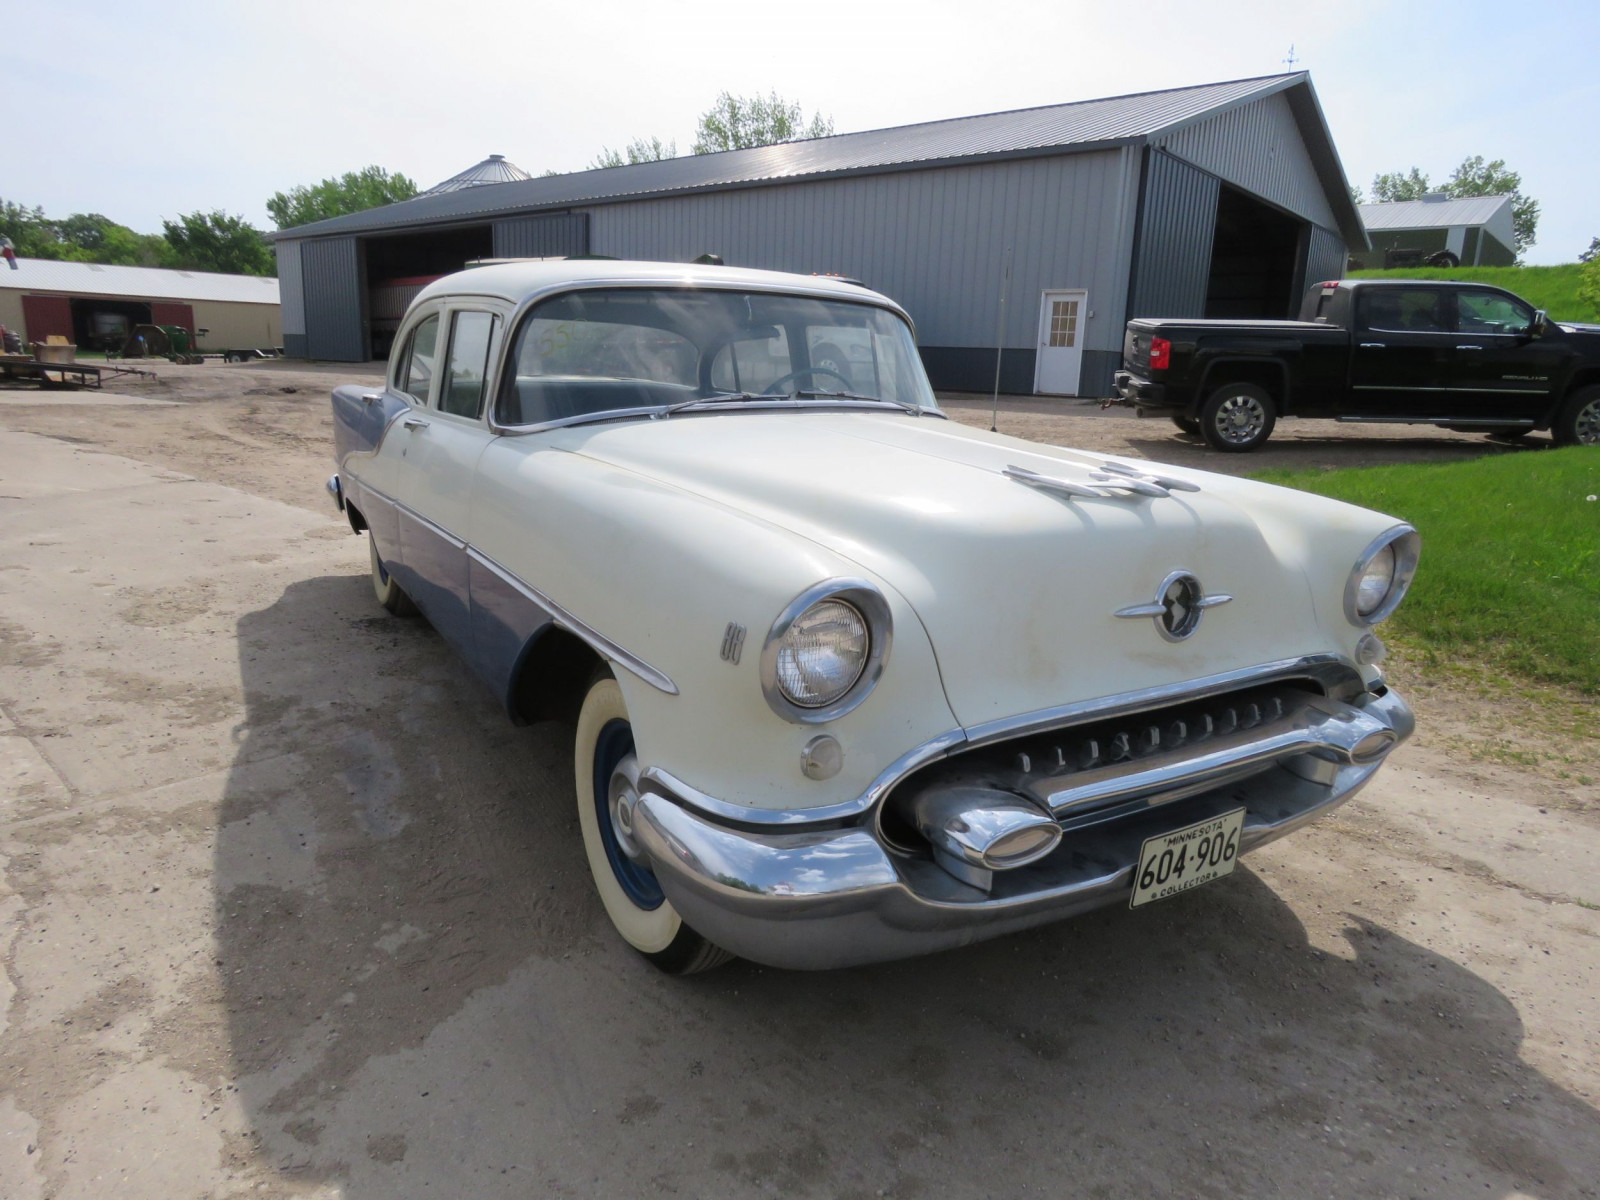 1955 Oldsmobile 88 4dr Sedan 557M72747 - Image 1